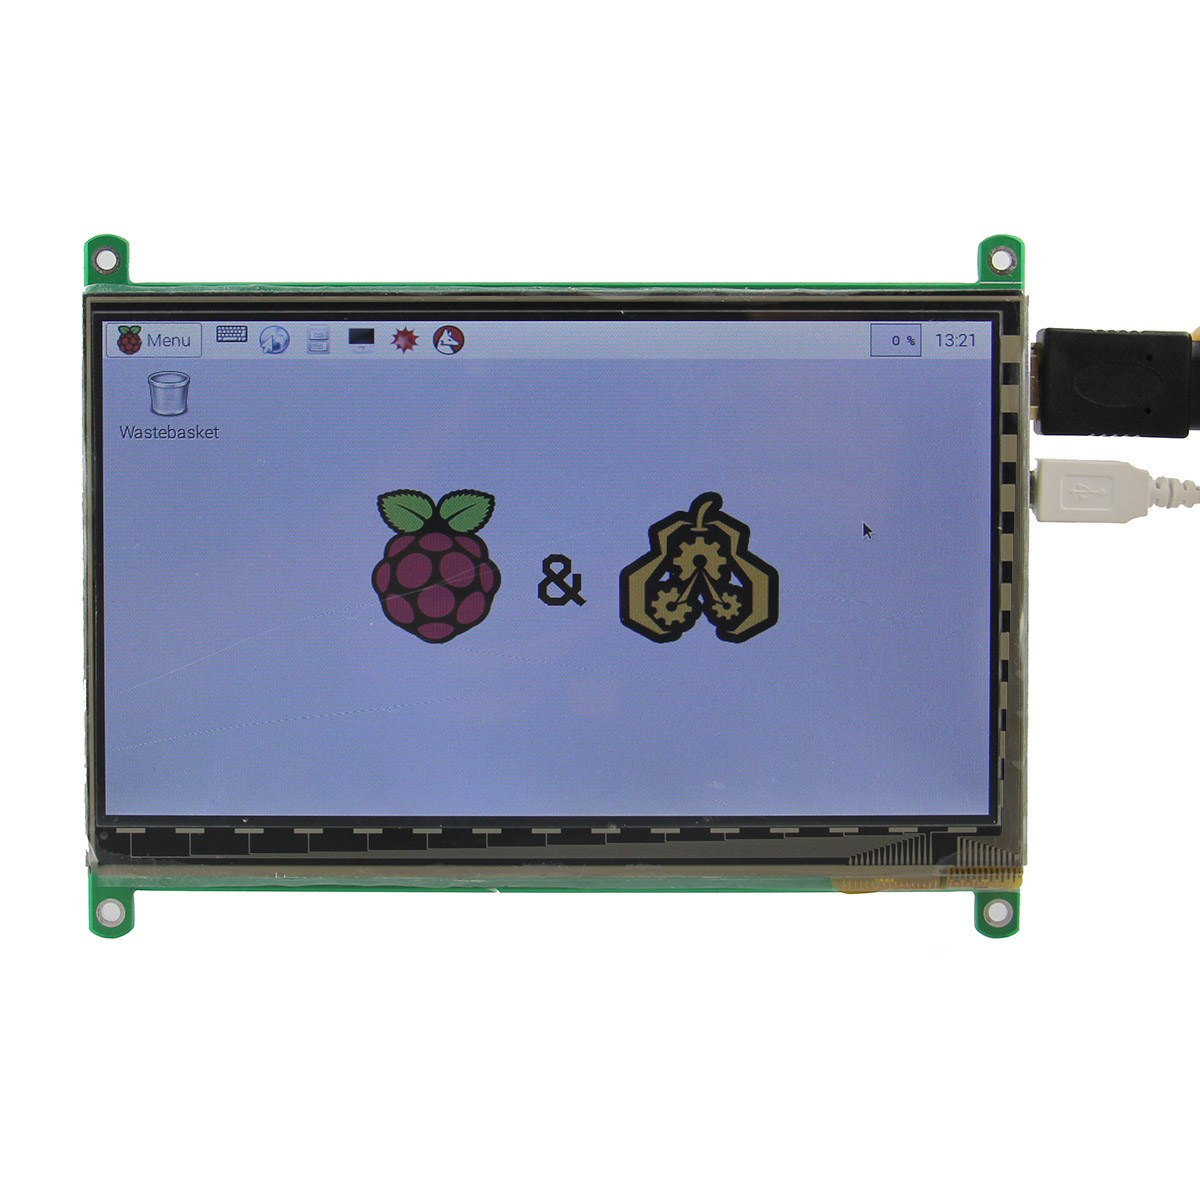 1PC New Arrival 7 Inch HDMI Capacitive Touch Screen TFT Display LCD For Raspberry Pi B/B+/Pi2 Demo Board geeetech computer game kit for kids stem and coding training toy based on raspberry pi demo board